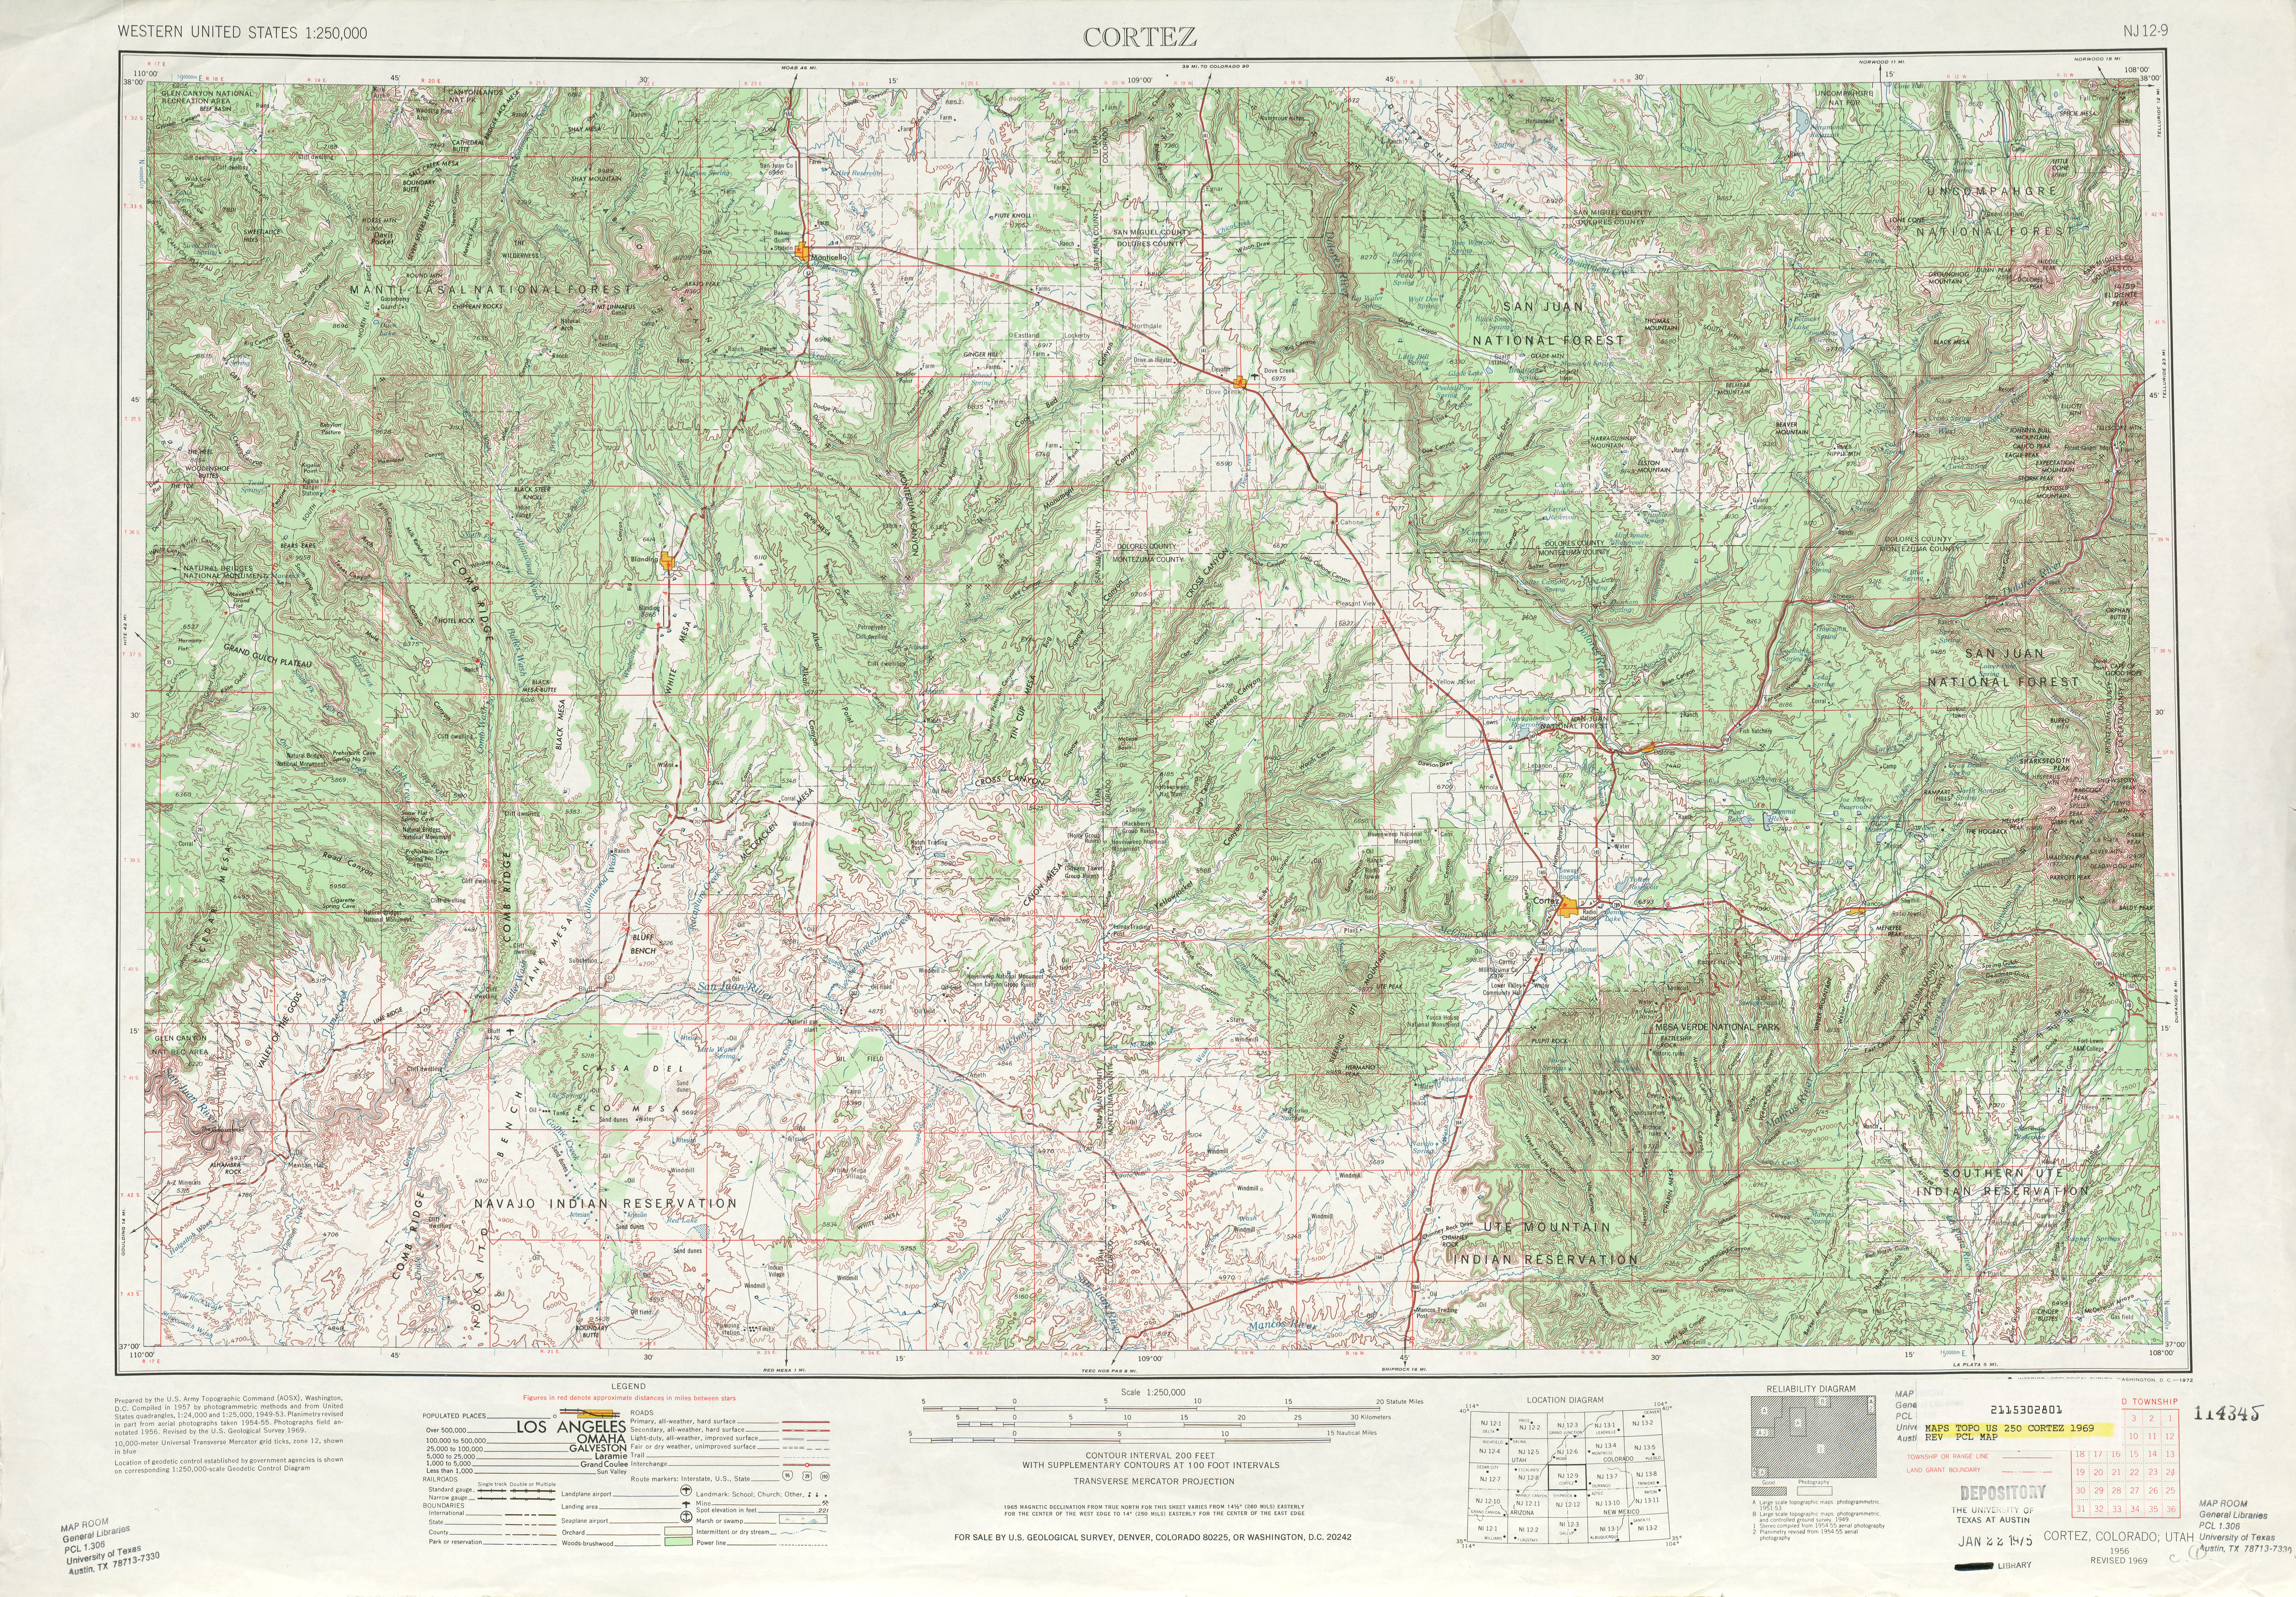 Cortez Topographic Map Sheet, United States 1969